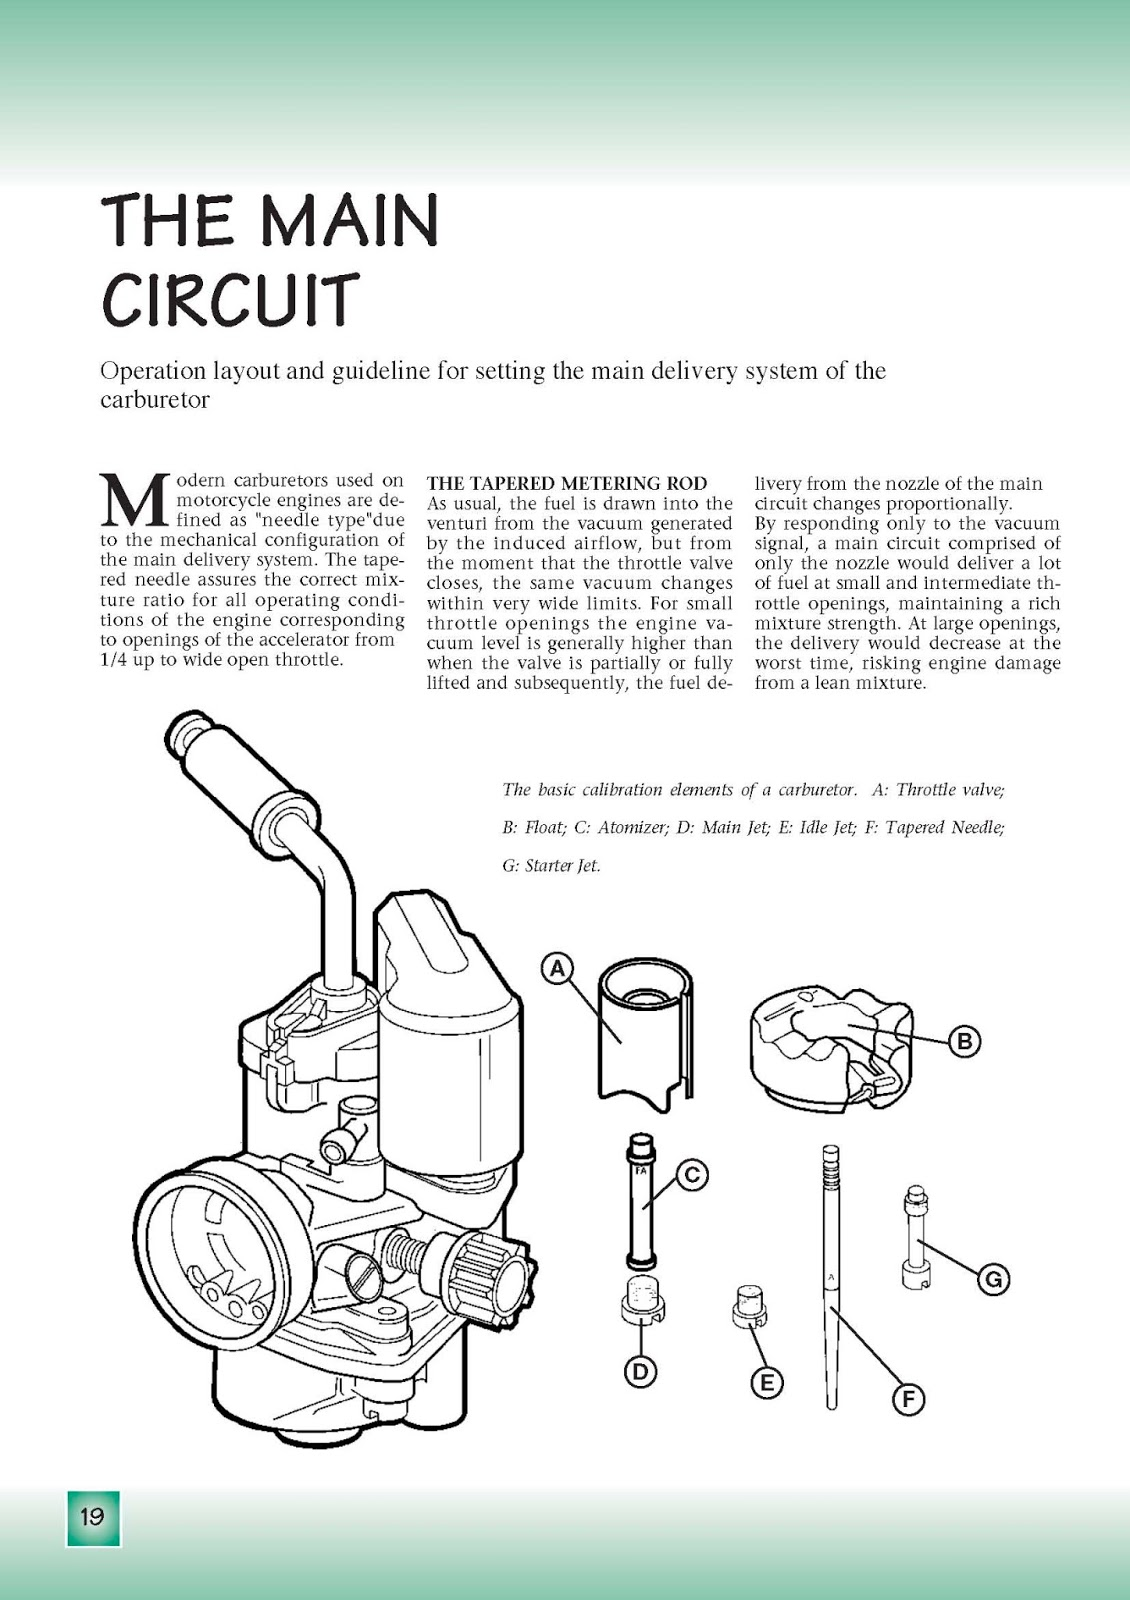 Dellorto fhc 20 Carburettor Manual